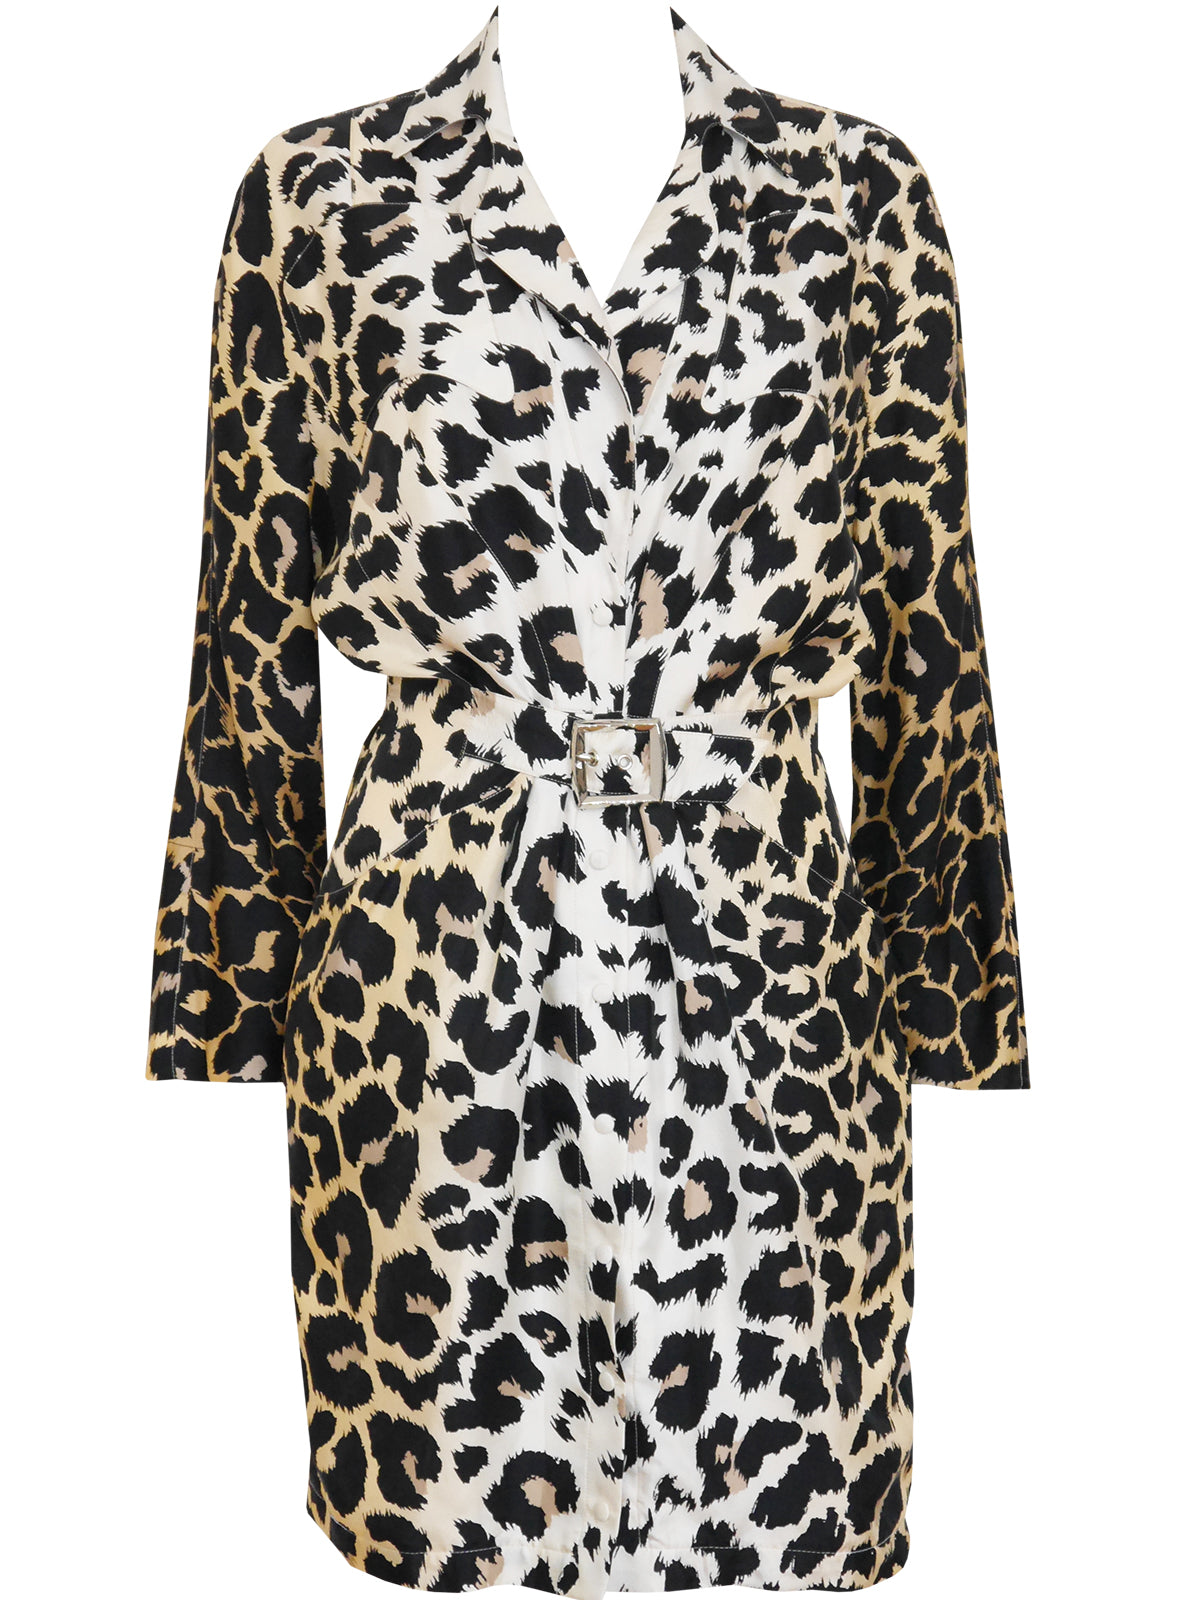 THIERRY MUGLER 1980s 1990s Vintage Leopard Print Silk Dress Size XS-S